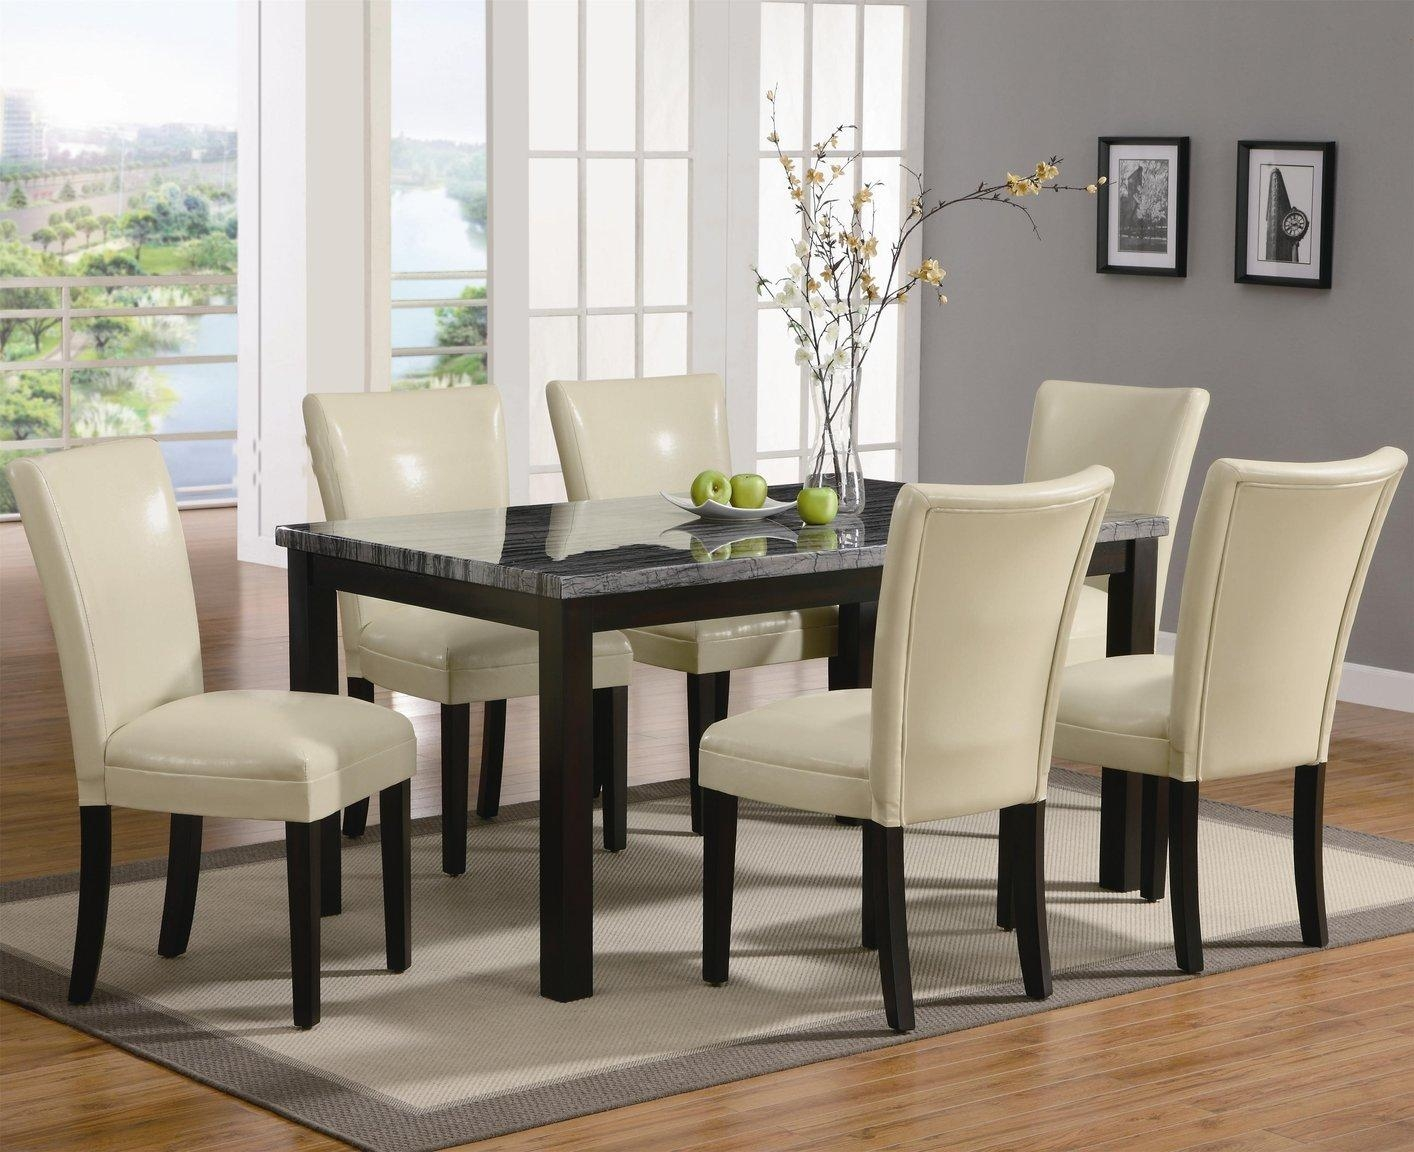 dining room slipcovers armless chairs wedding chair covers lanarkshire 20 top sofa ideas